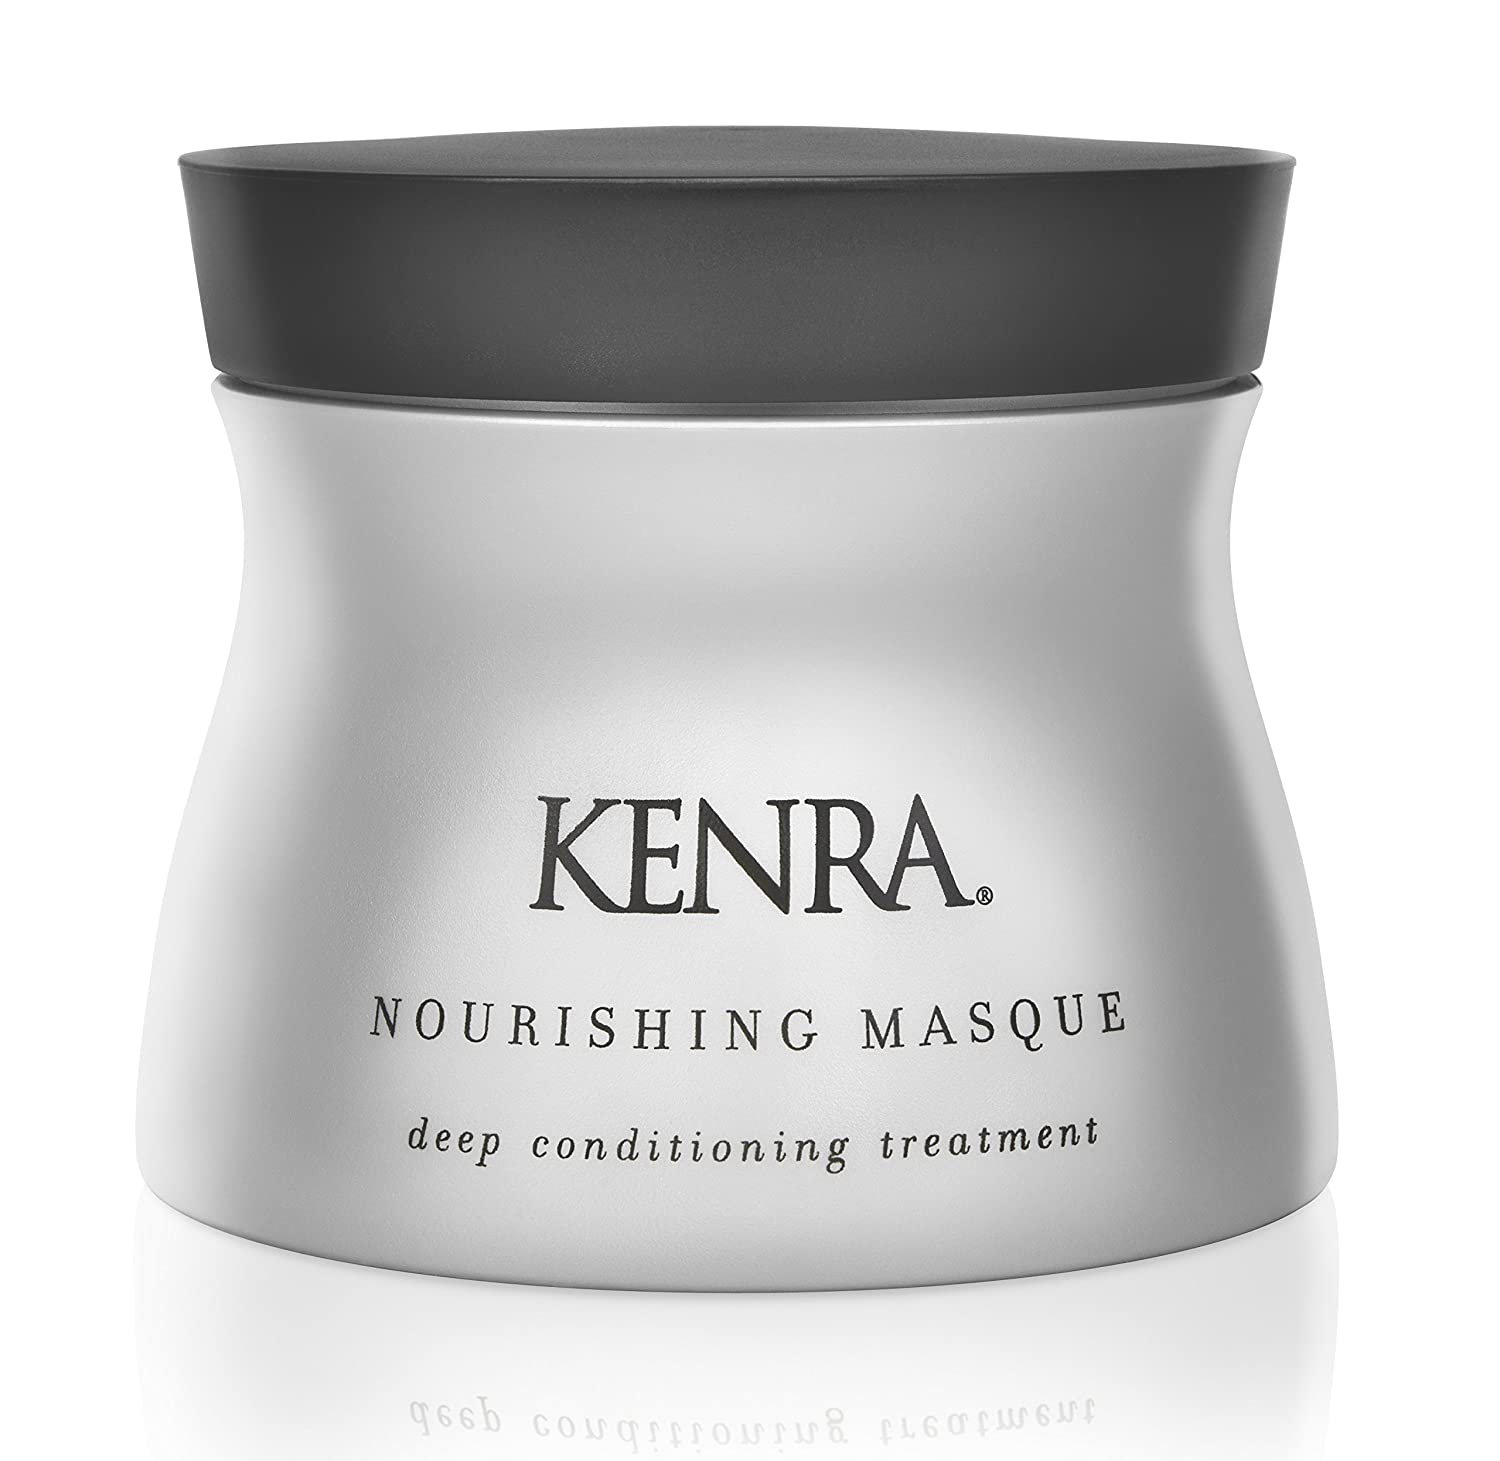 Kenra, Nourishing Masque 5.1oz